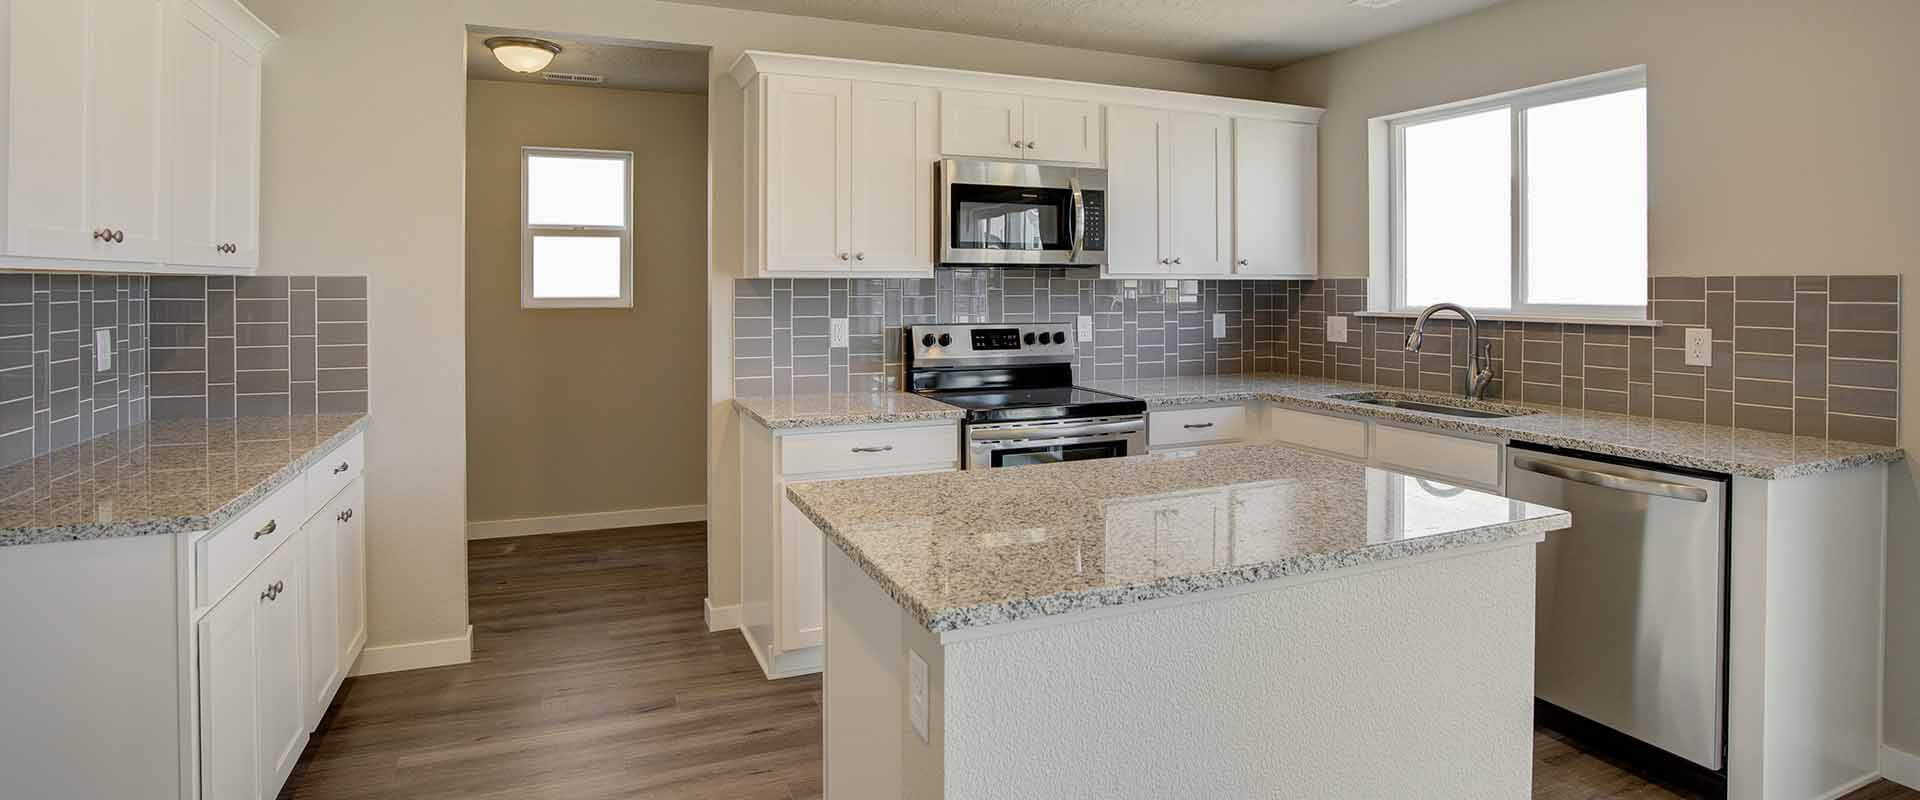 Ponderosa_Hubble_Homes_New_Homes_Boise_0002_Charter Pointe Ponderosa Country - Kitchen - 9260 W Touchstone Dr -4.jpg